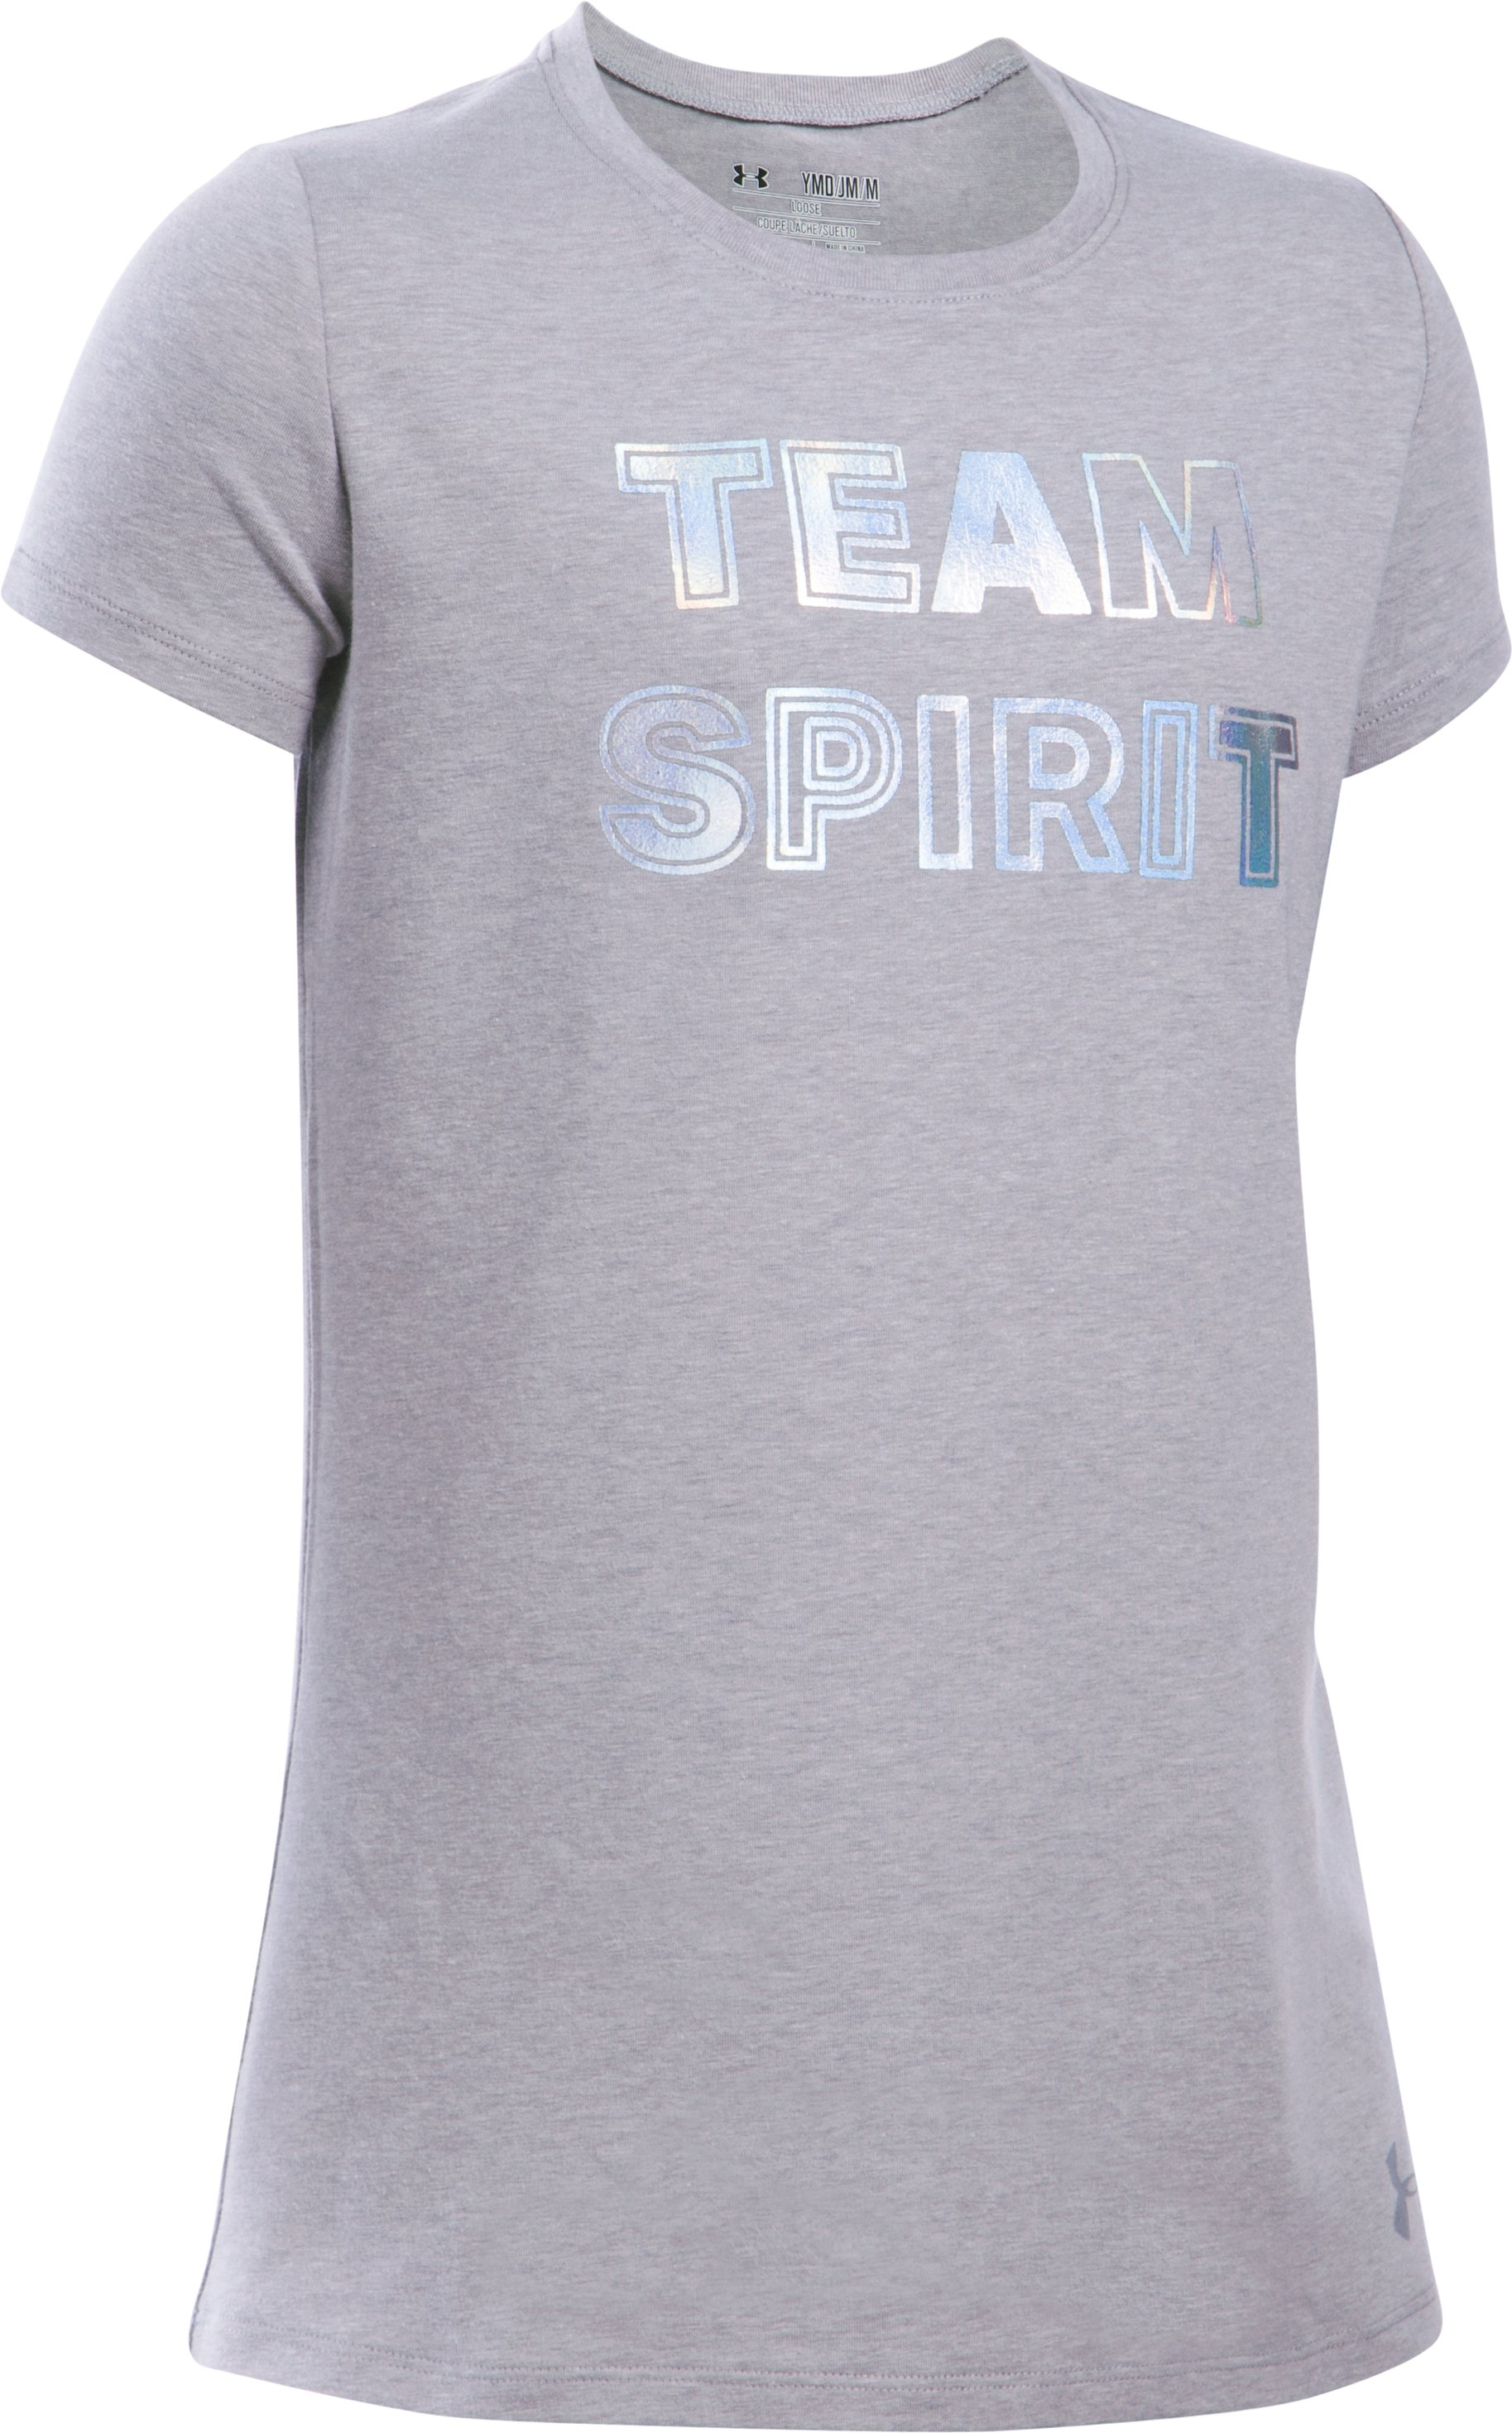 Girls' UA Team Spirit Short Sleeve T-Shirt, True Gray Heather, zoomed image